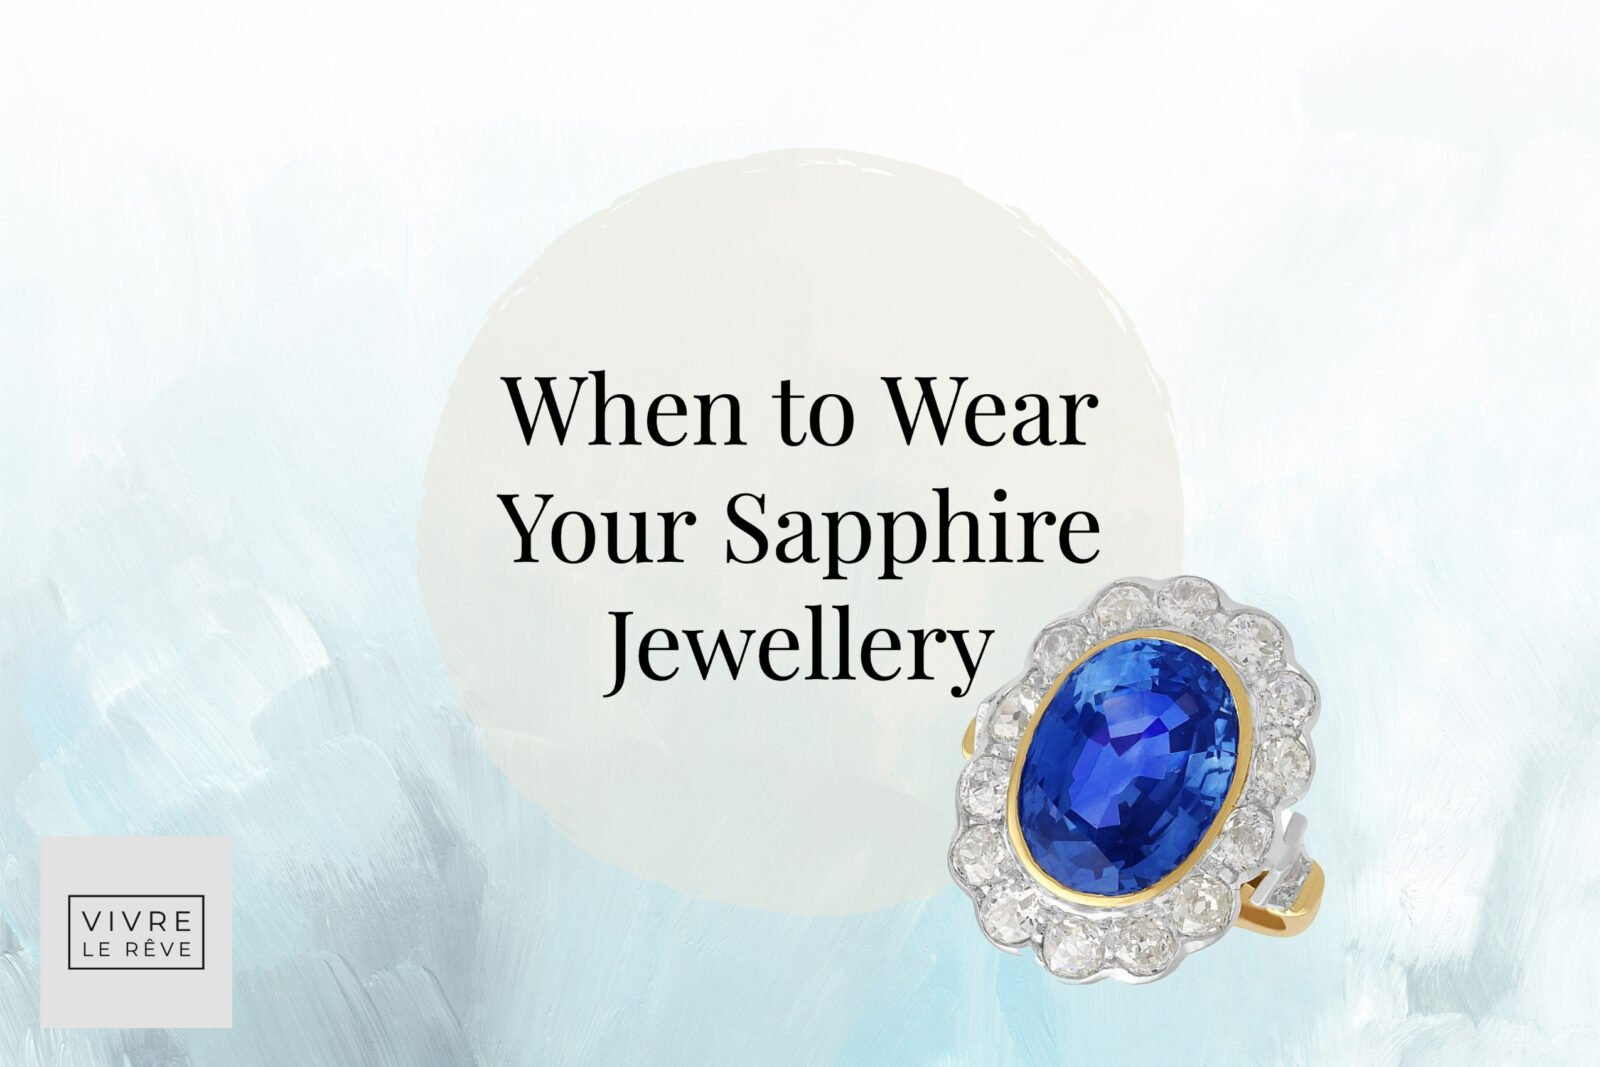 When to Wear Your Sapphire Jewellery